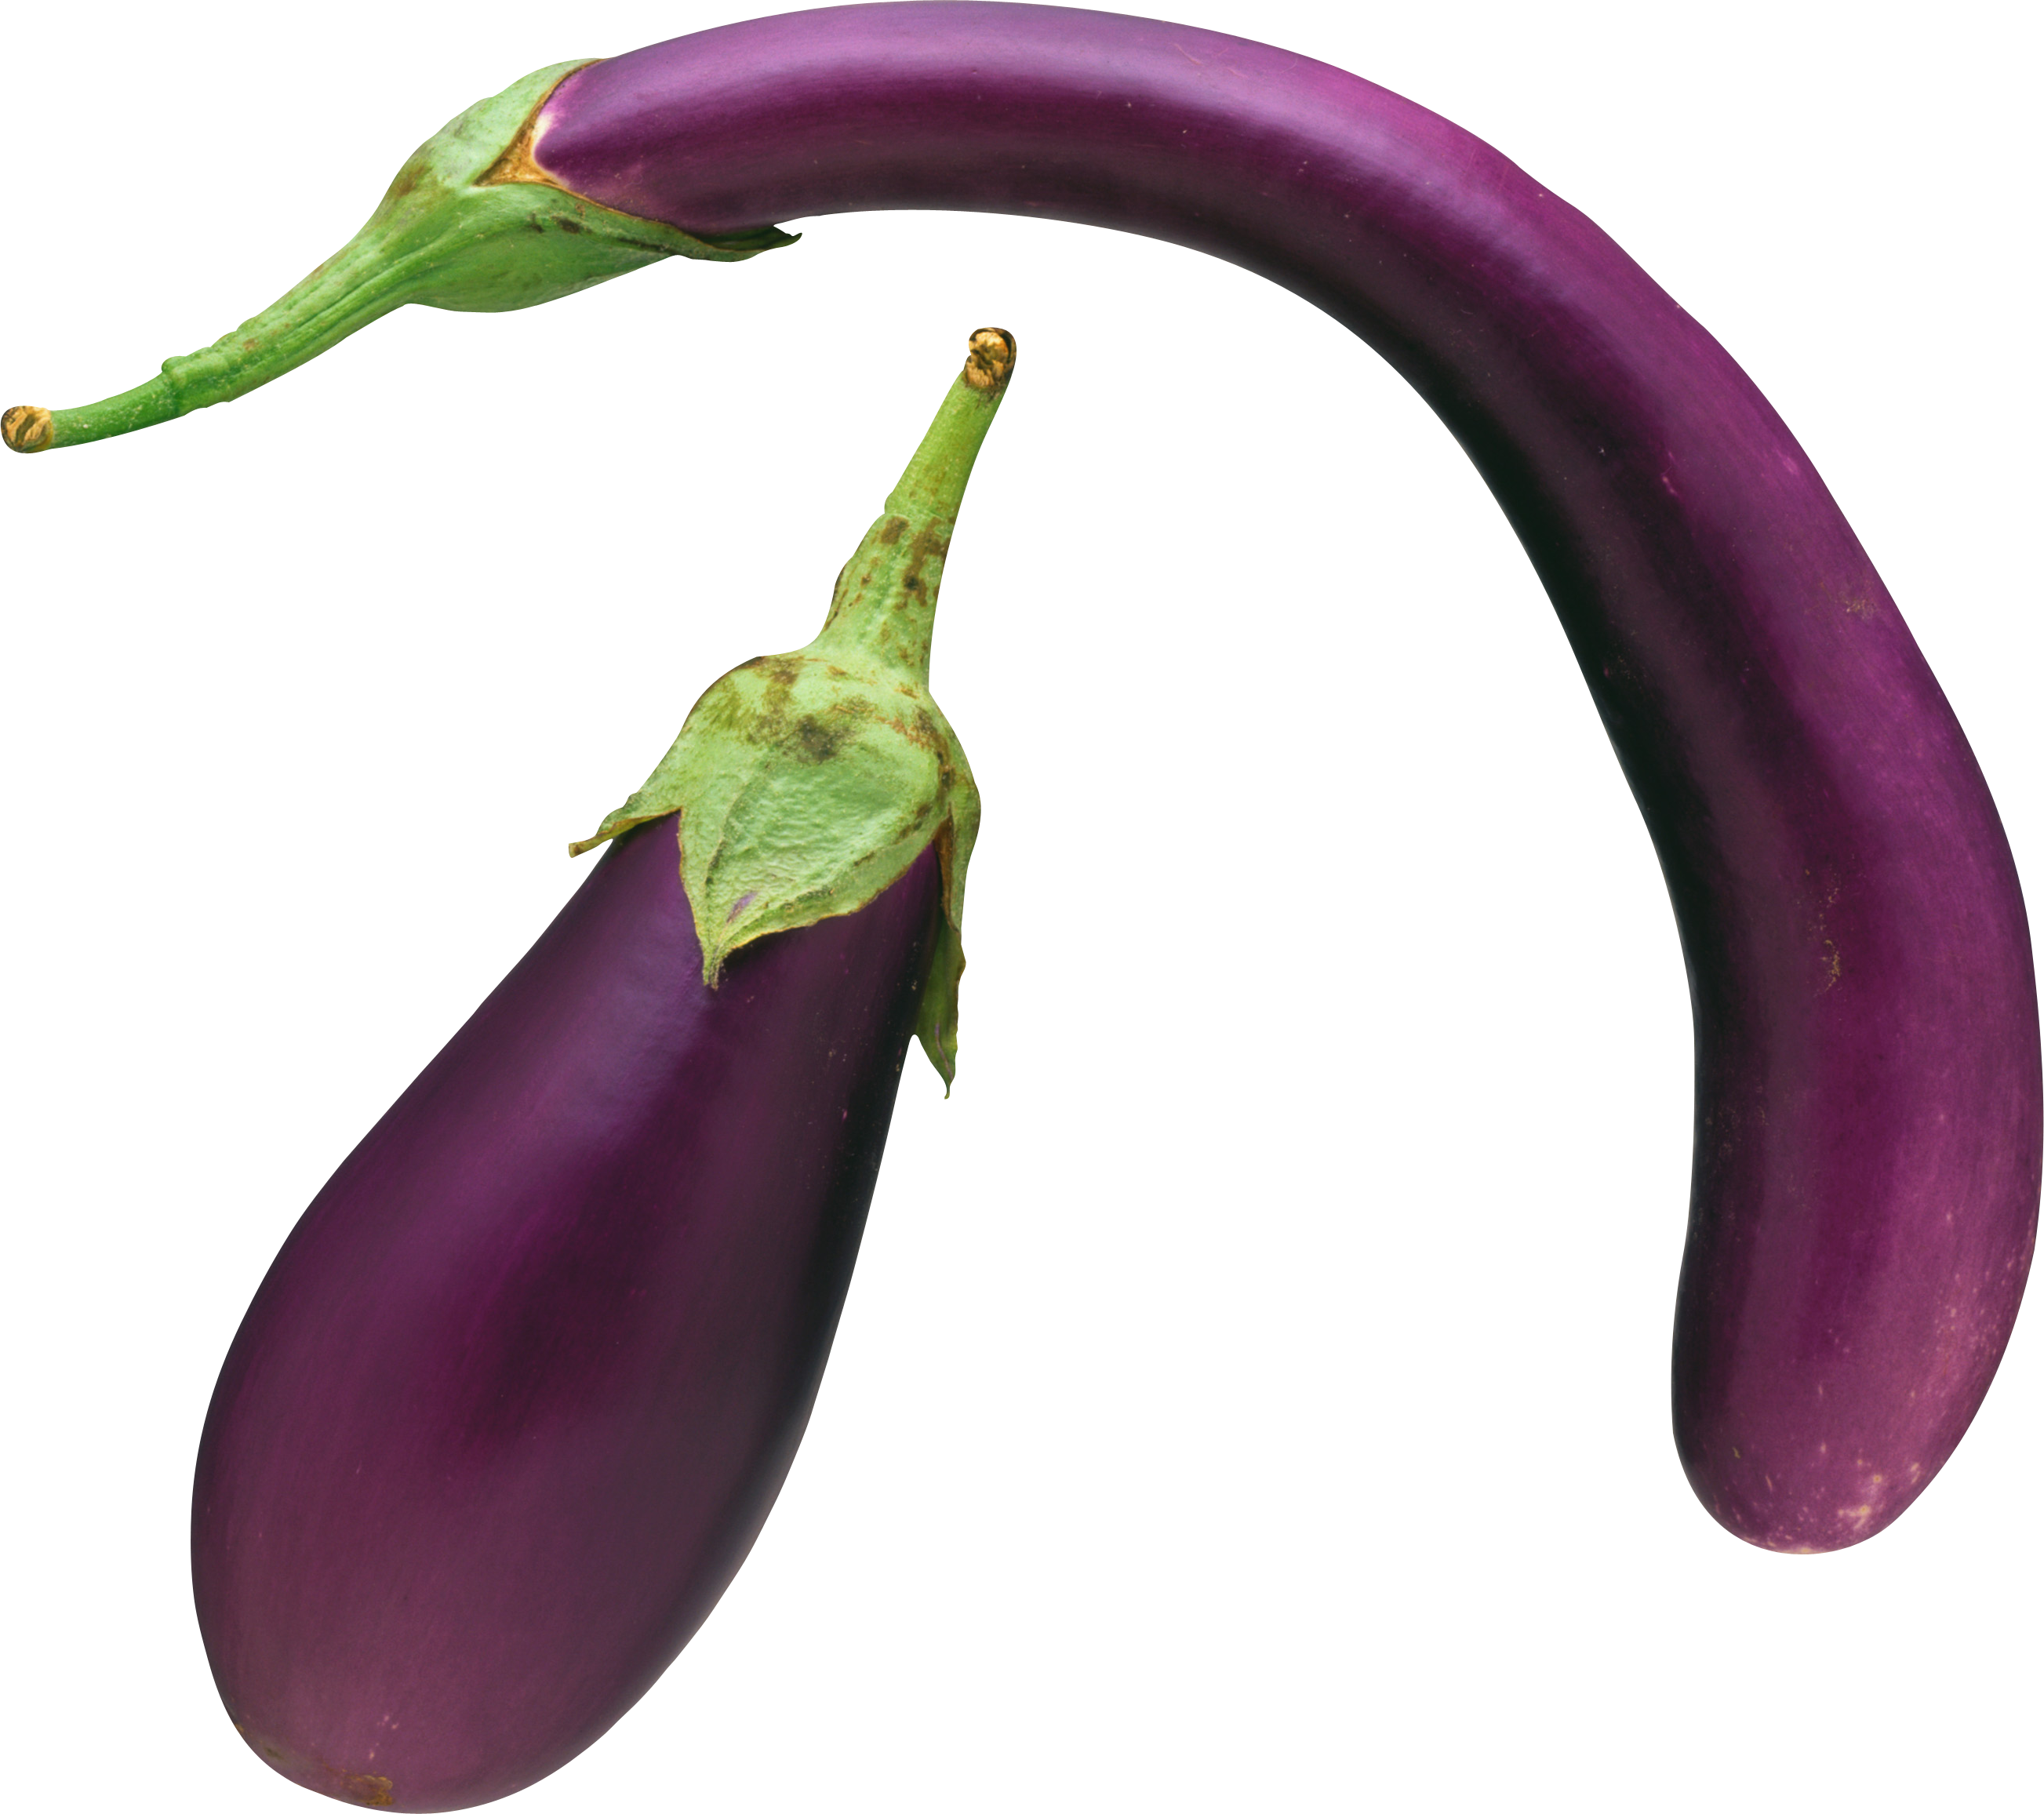 Png Format Images Of Eggplant